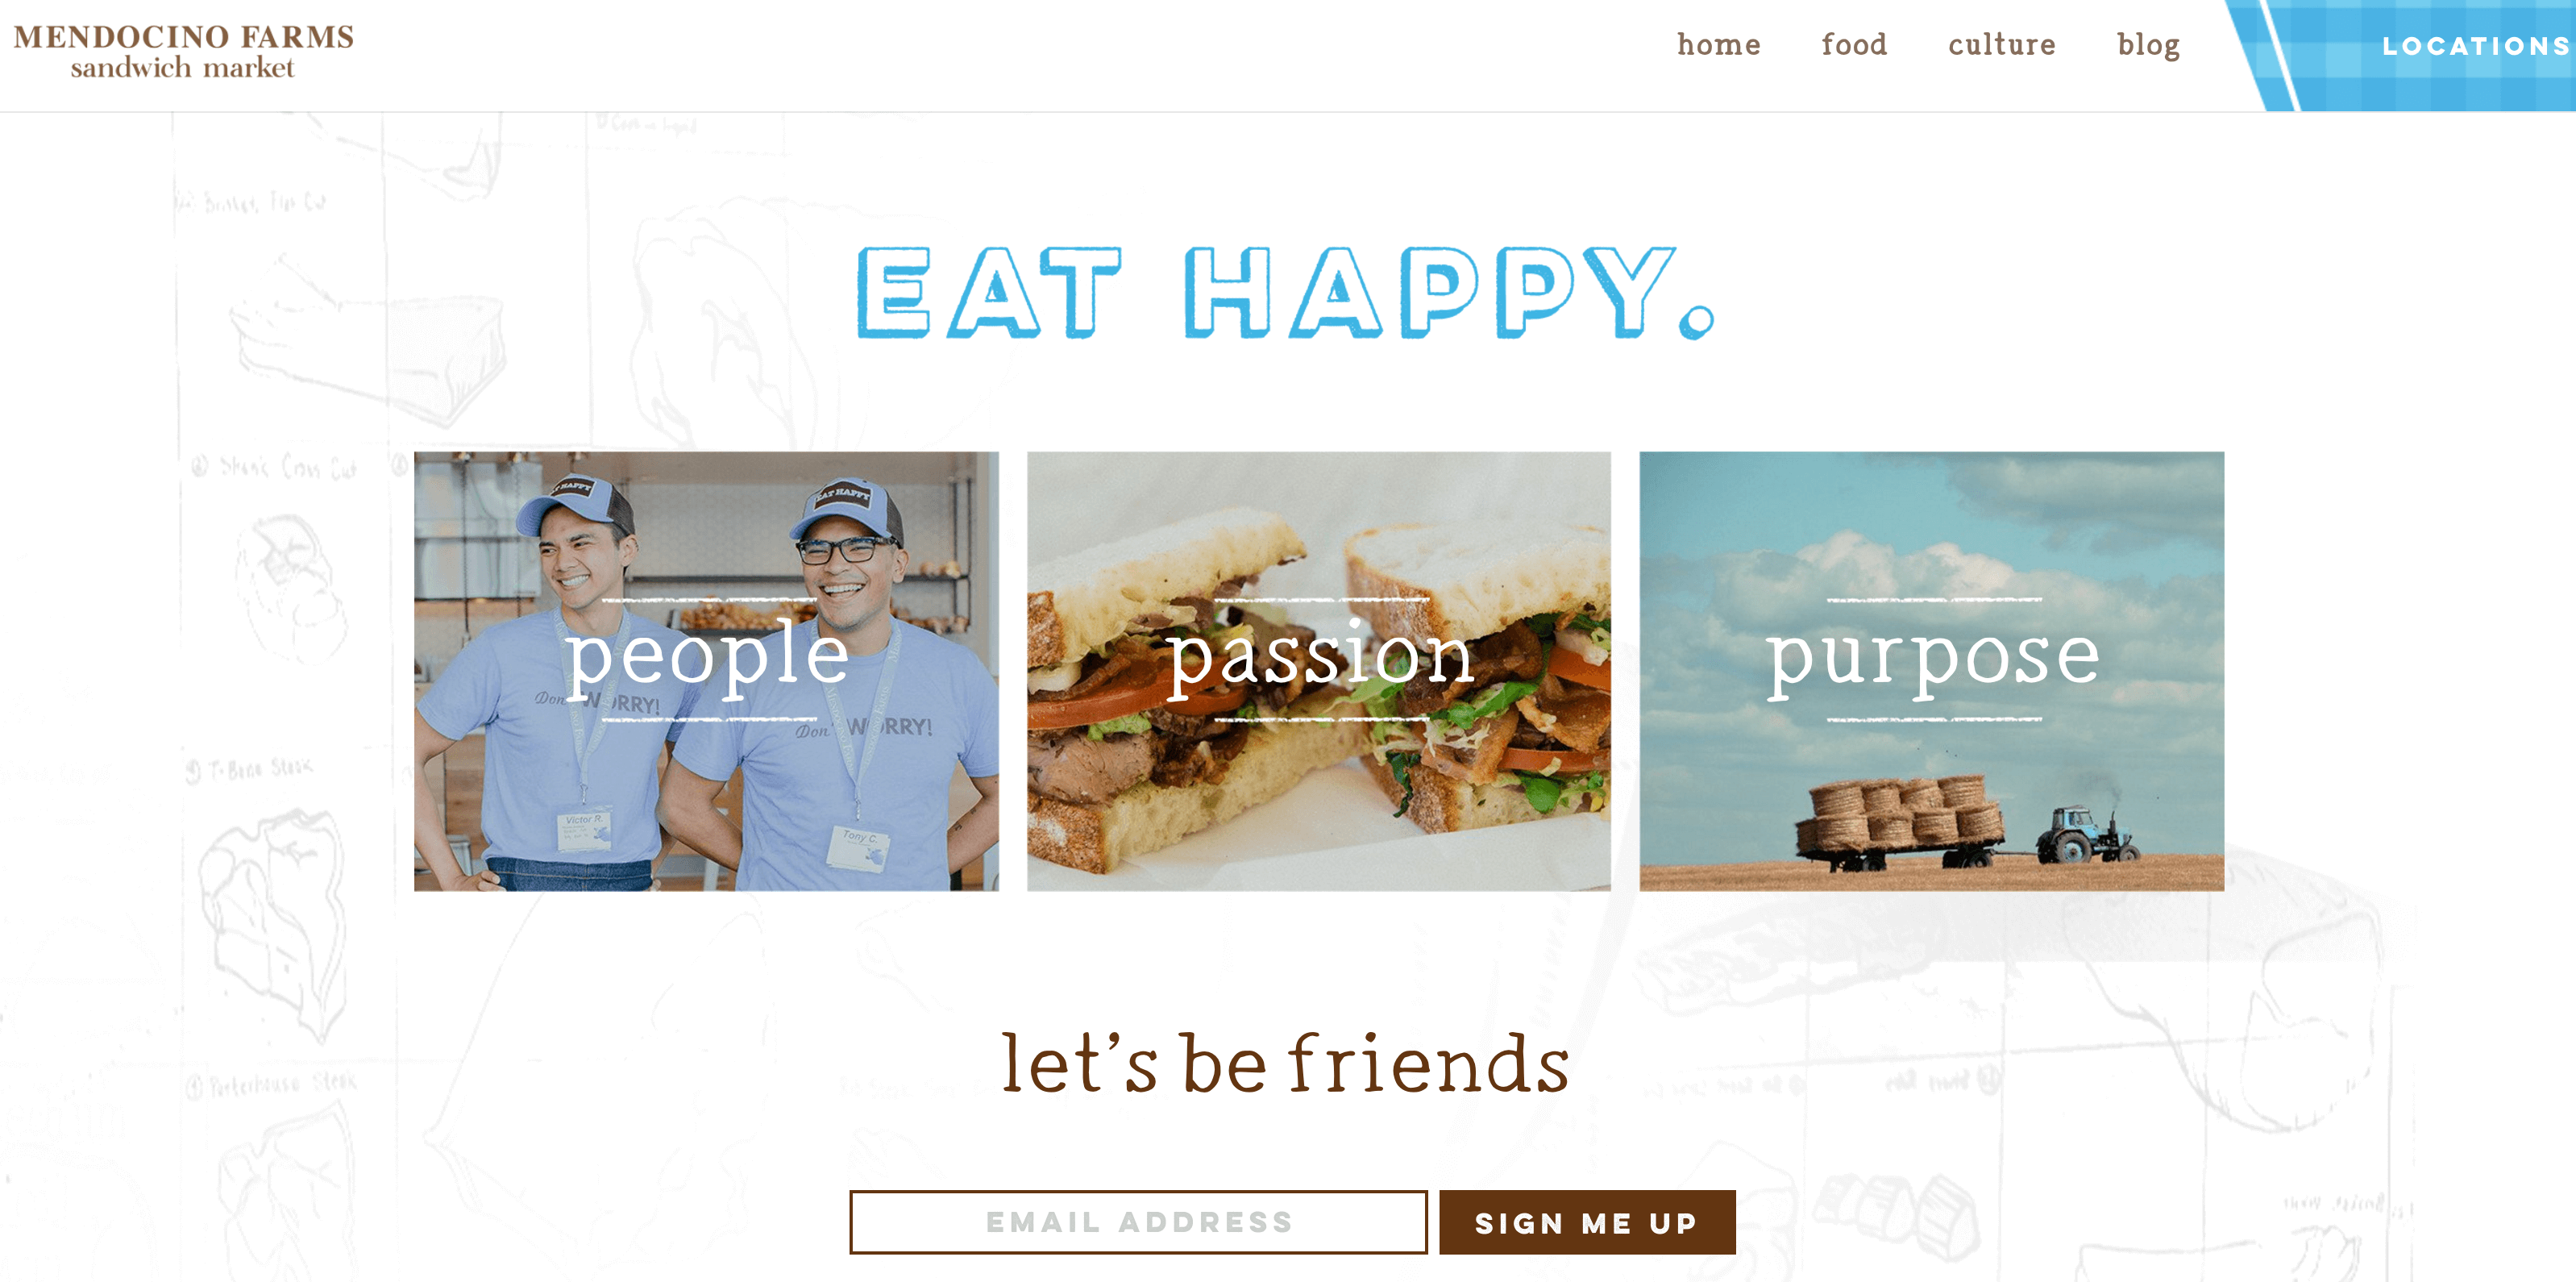 The Mendocino Farms homepage.